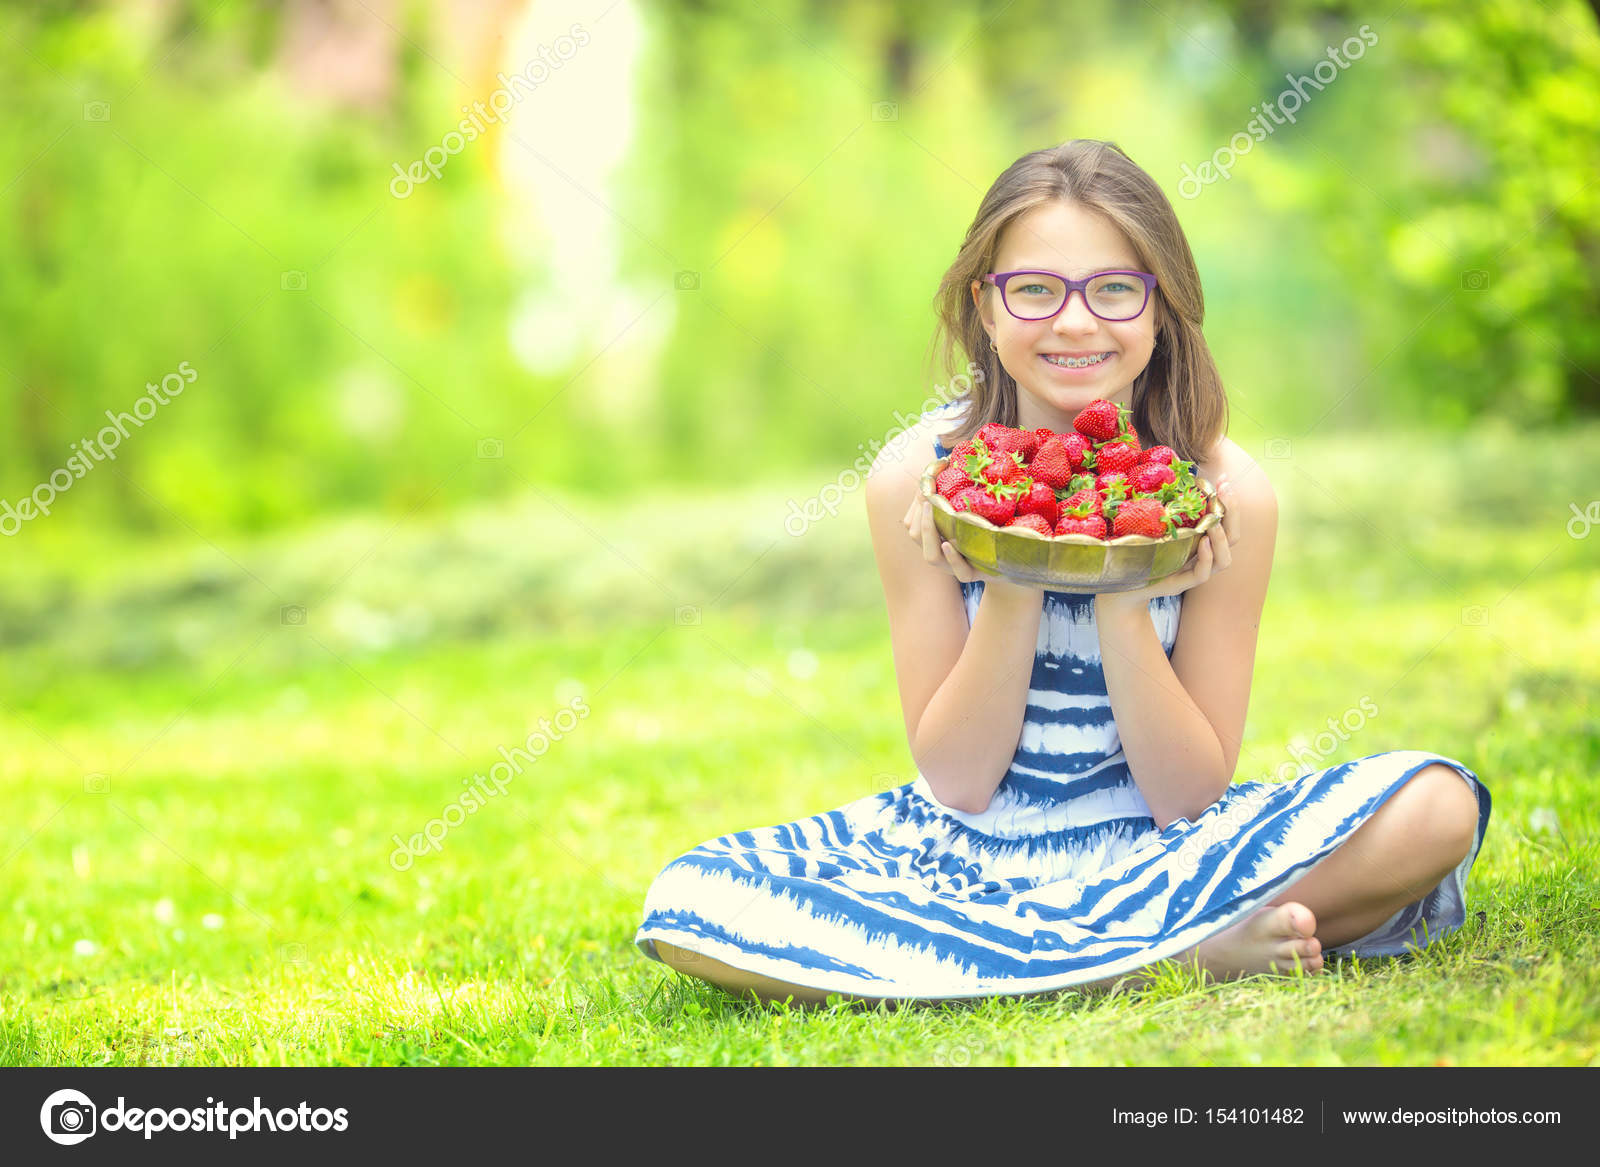 surprising Cute Little Teen Part - 20: Cute little girl with bowl full of fresh strawberries. Pre - teen girl with  glasses